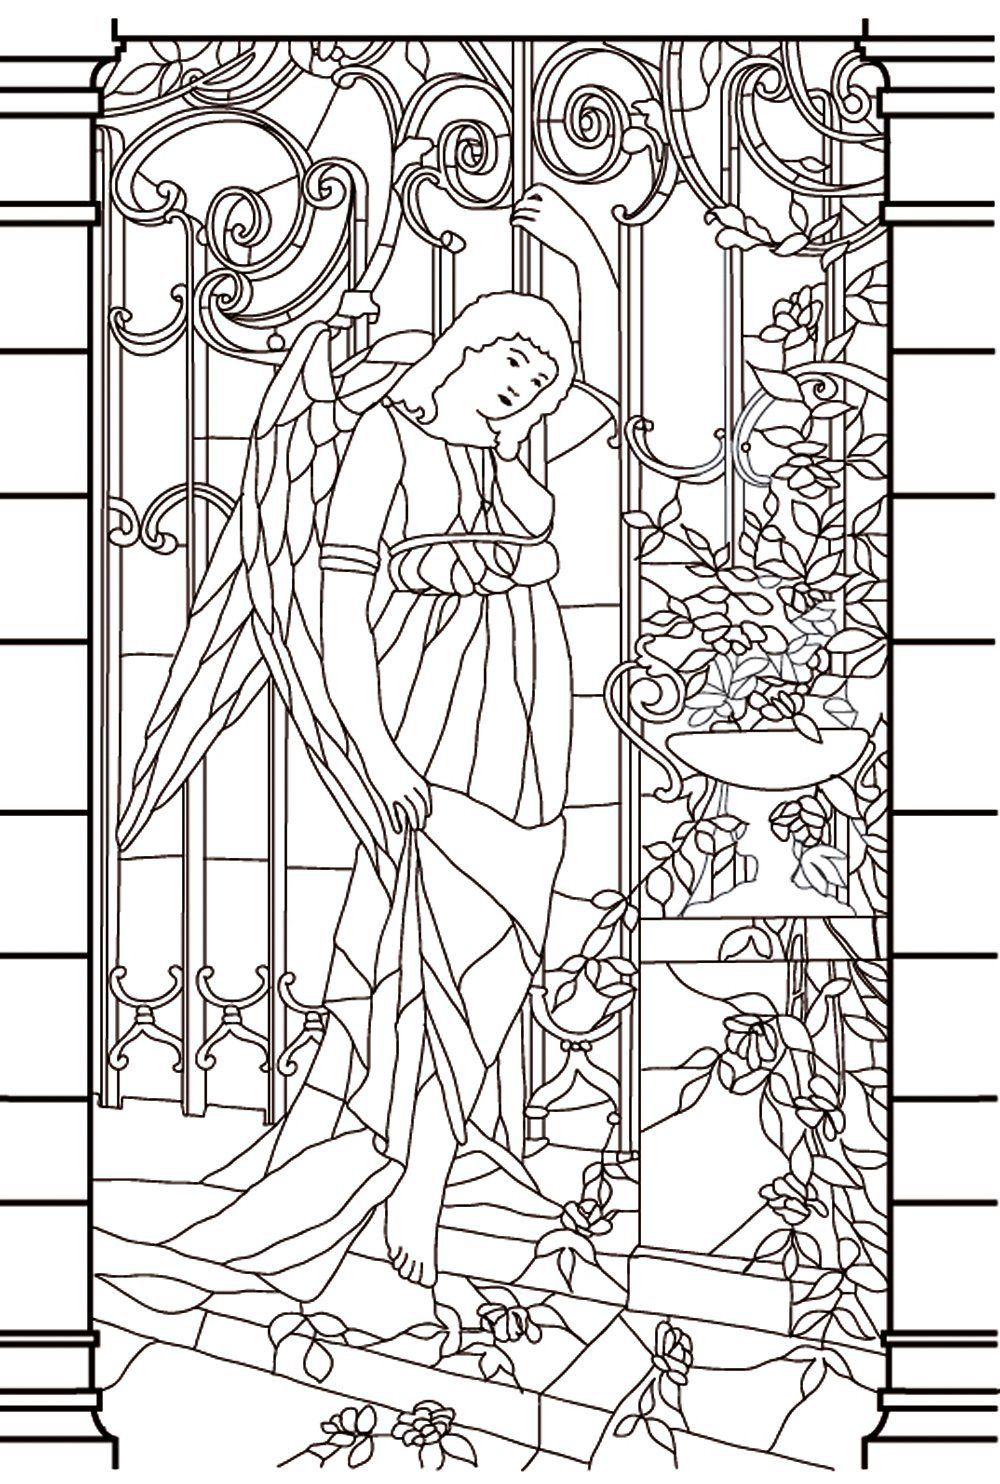 Free Coloring Page Vitrail Moyen Age Drawing Window Stained Glass Of A Goddess In Melancholy Aspect To Print And Color